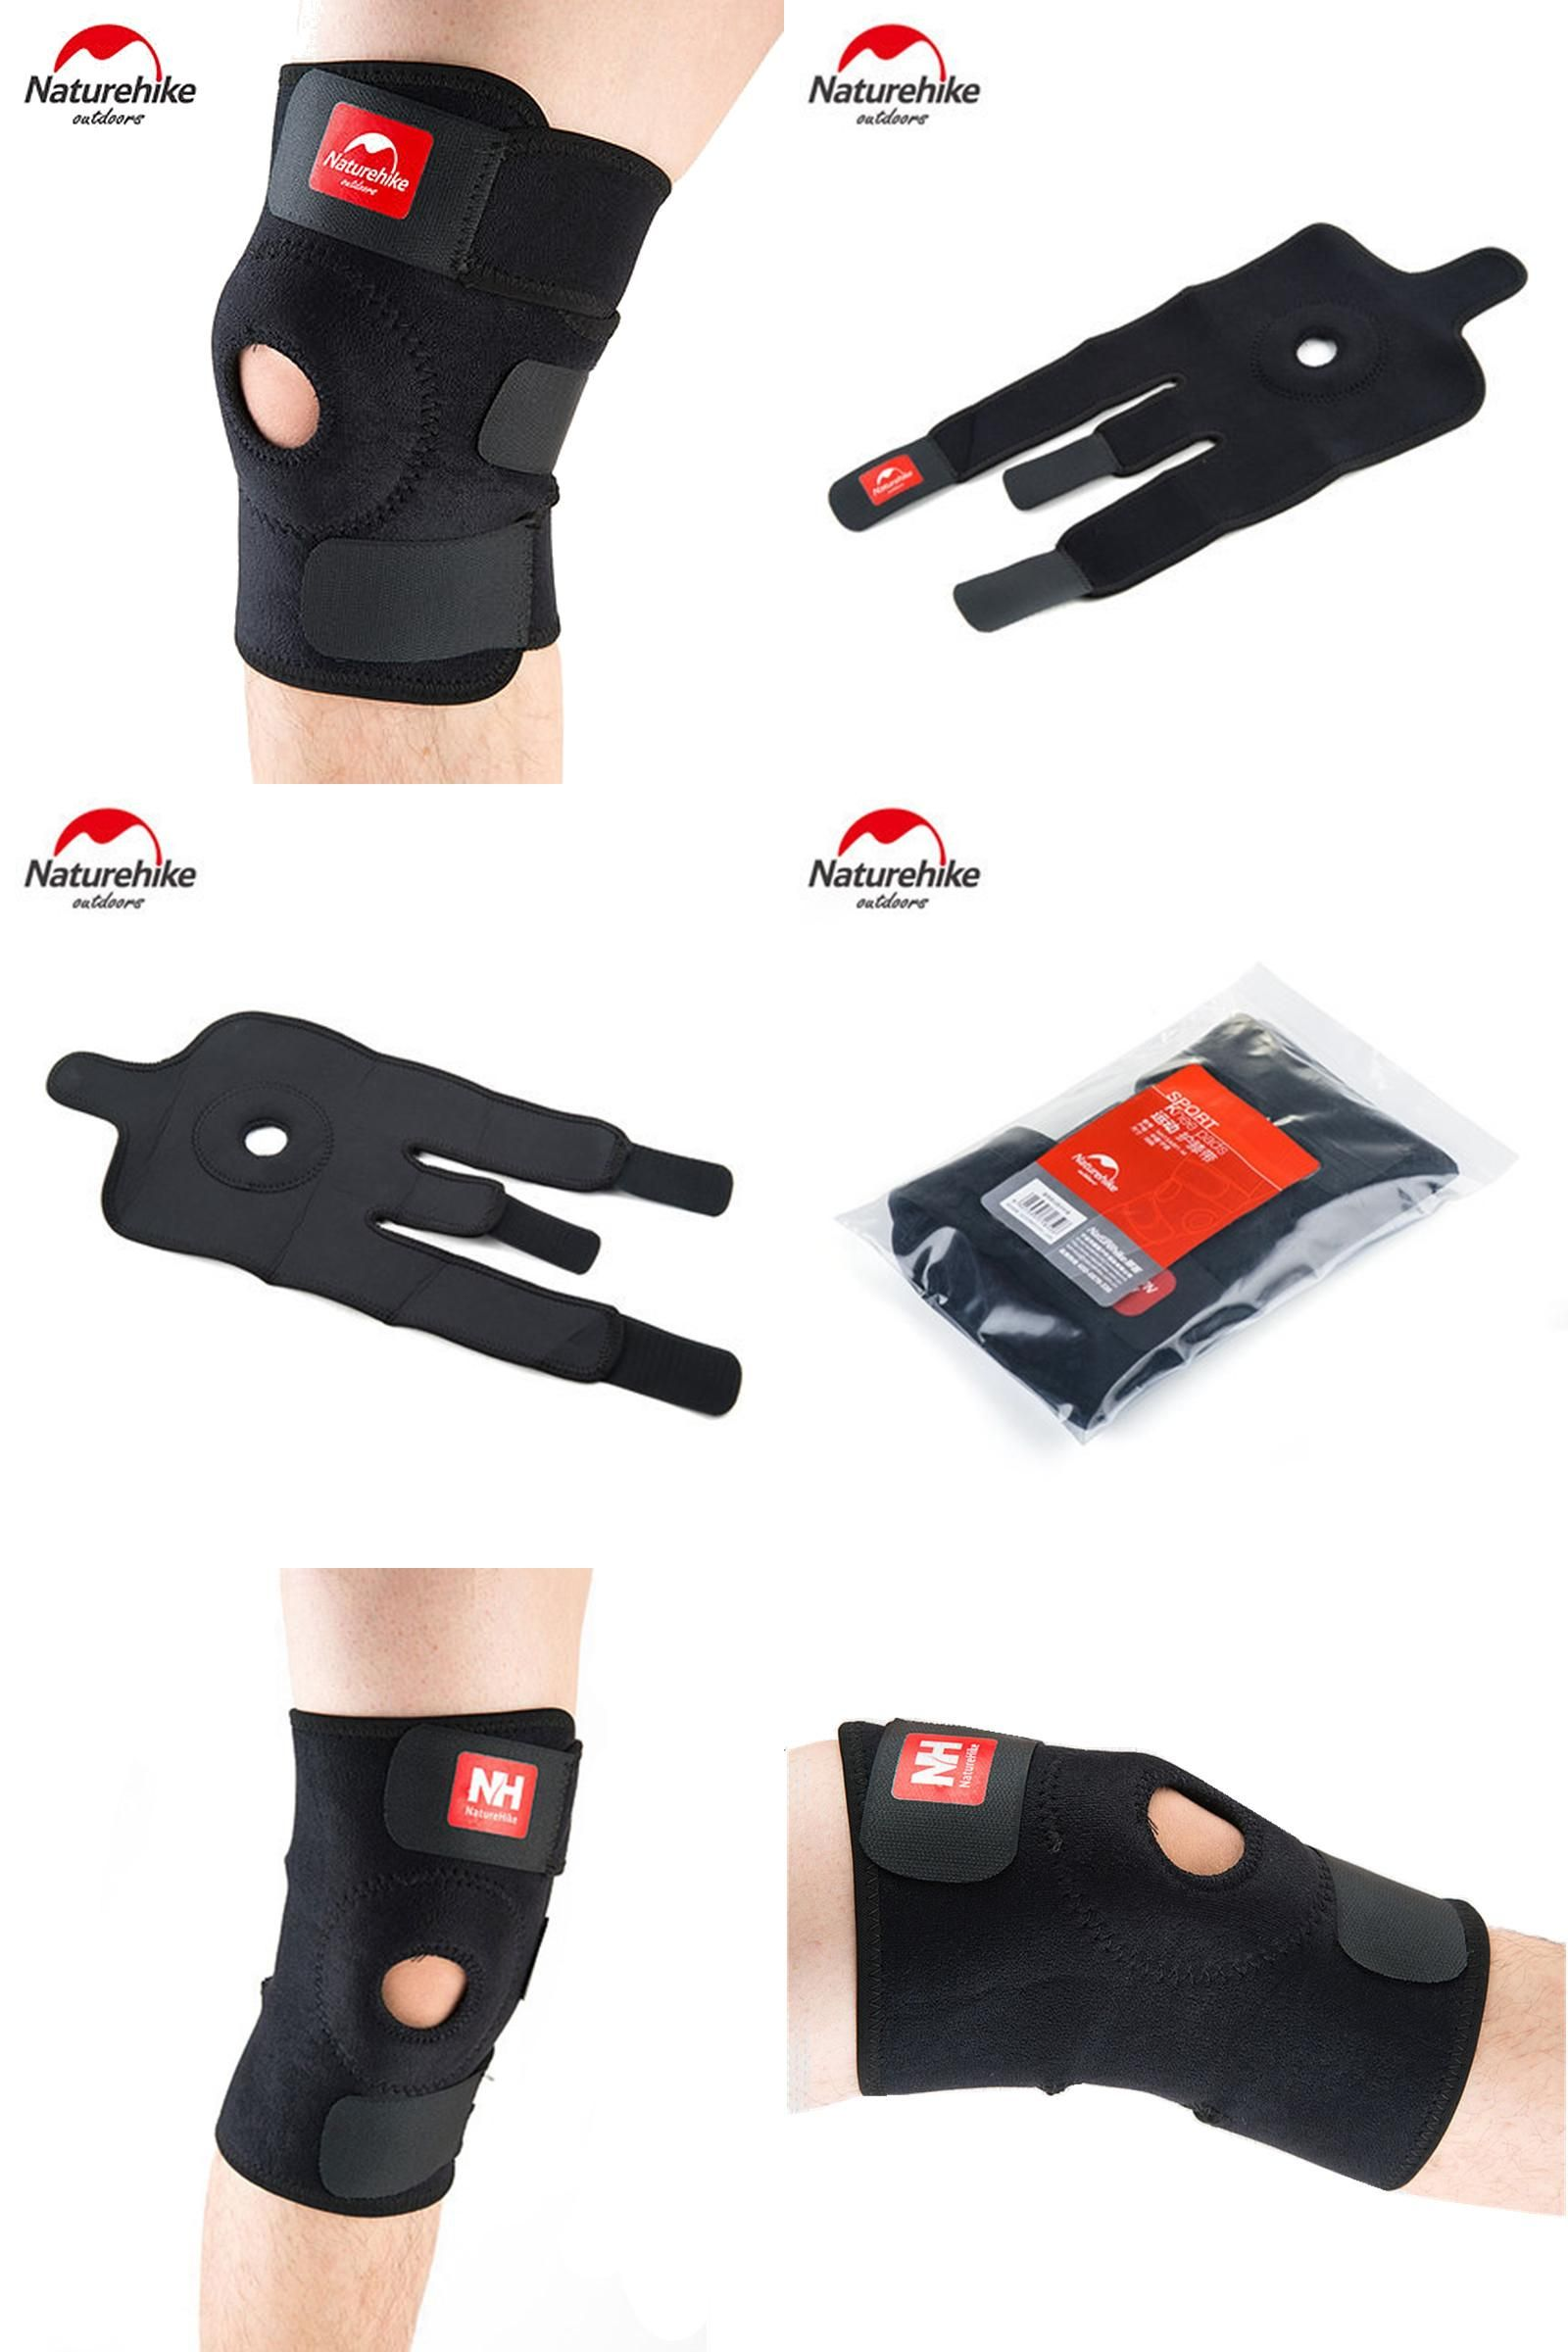 043453808f [Visit to Buy] NatureHike Adjustable Elastic Knee Support Brace Kneepad  Patella Knee Pads Hole Sports Kneepad Safety Guard Strap For Running  #Advertisement